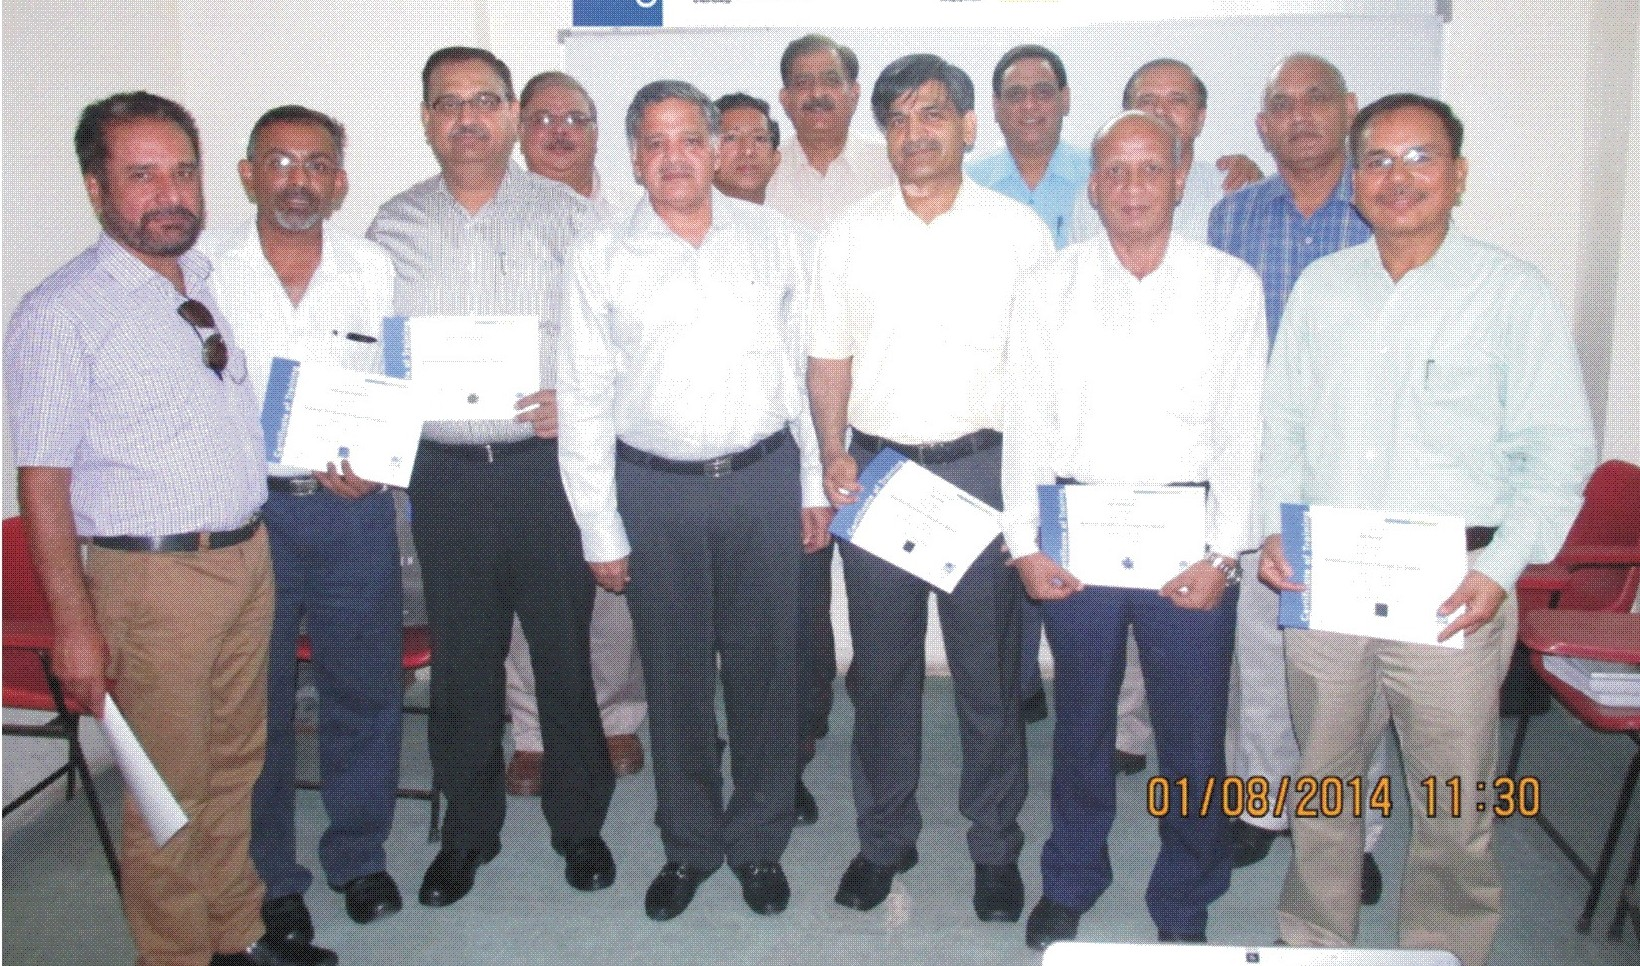 Officers with their ASQ certificates (L-R: Col HS Grewal, Col A Agnihotri, Col V Lalchandani, Col V Mishra, Maj Gen (Dr) BS Yadav (CEO, Q-Tech Synergy), Mr  C James (Instructor, ASQ), Col K Singh, Brig JK Sethi, Col SS Randhawa,  Brig RG Goswami,... 			 			</div> 				<a href=